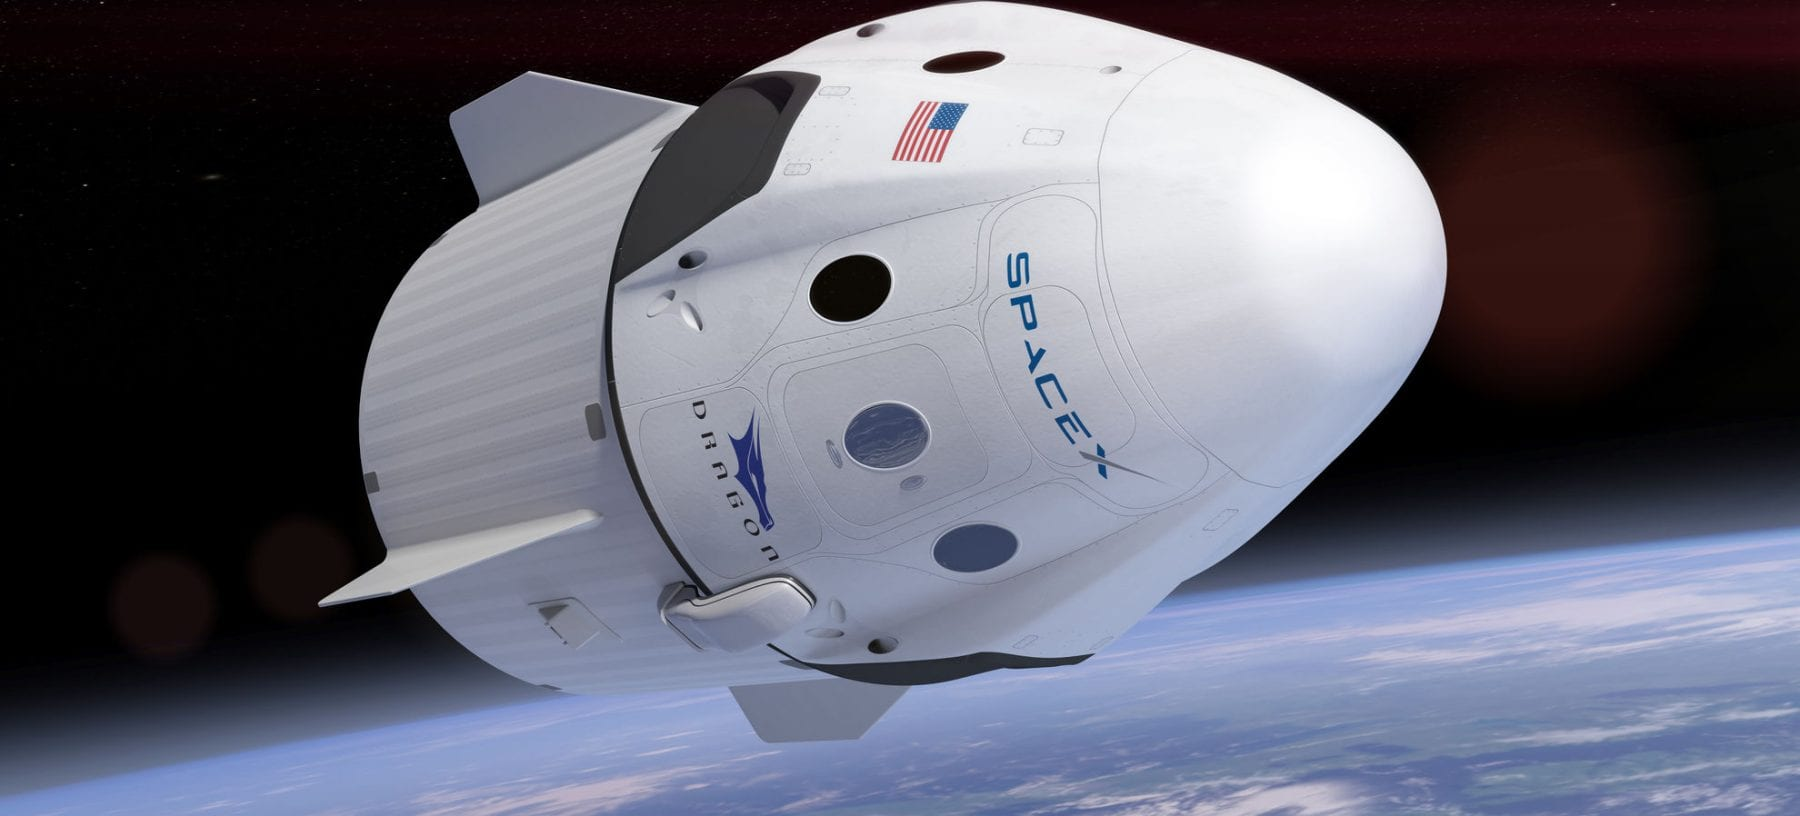 Space X's Crew Dragon capsule. Source: Universe Today